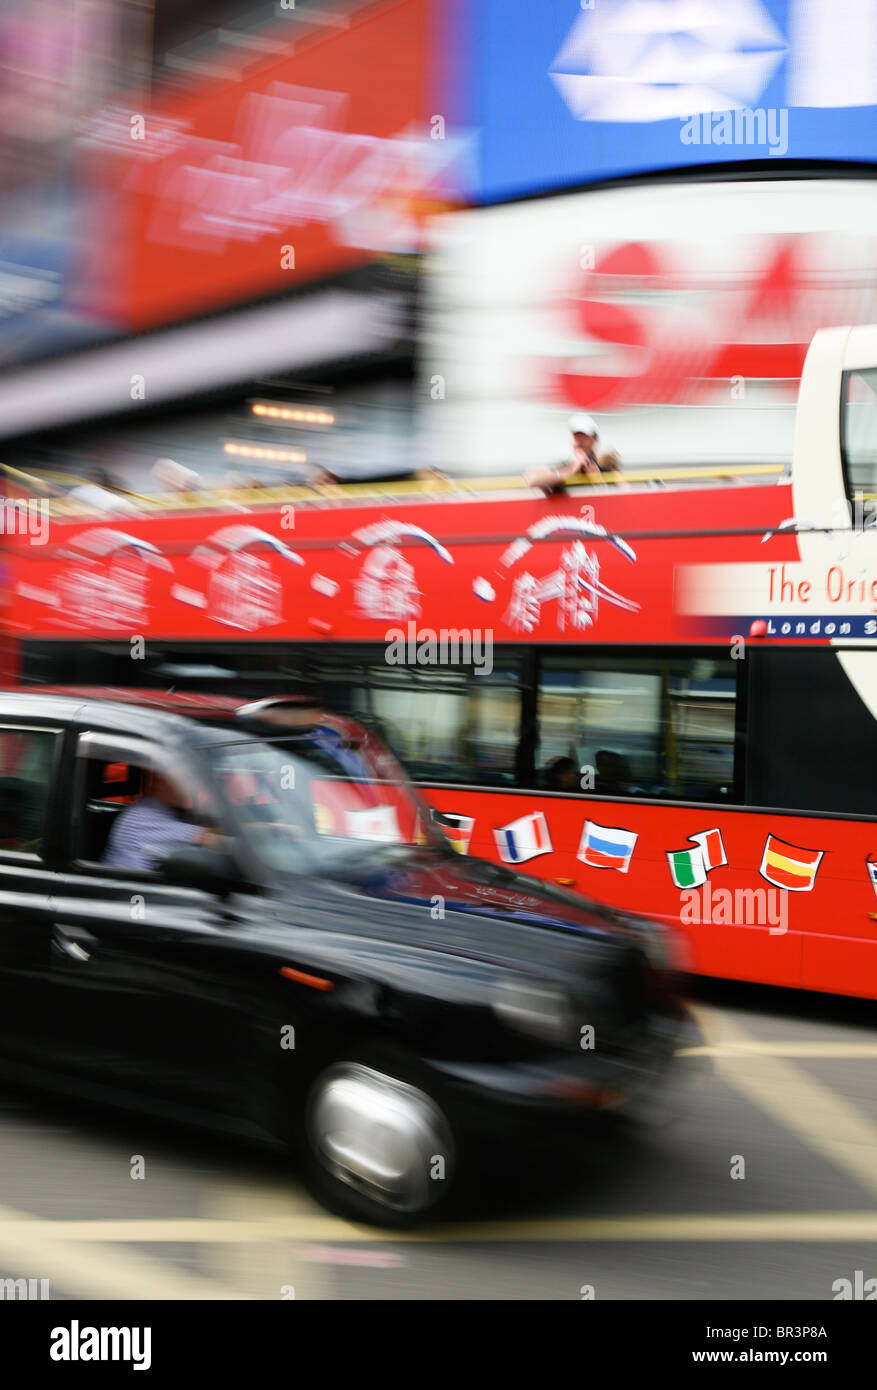 Taxi and sightseeing bus travelling through Piccadilly Circus, London - Stock Image